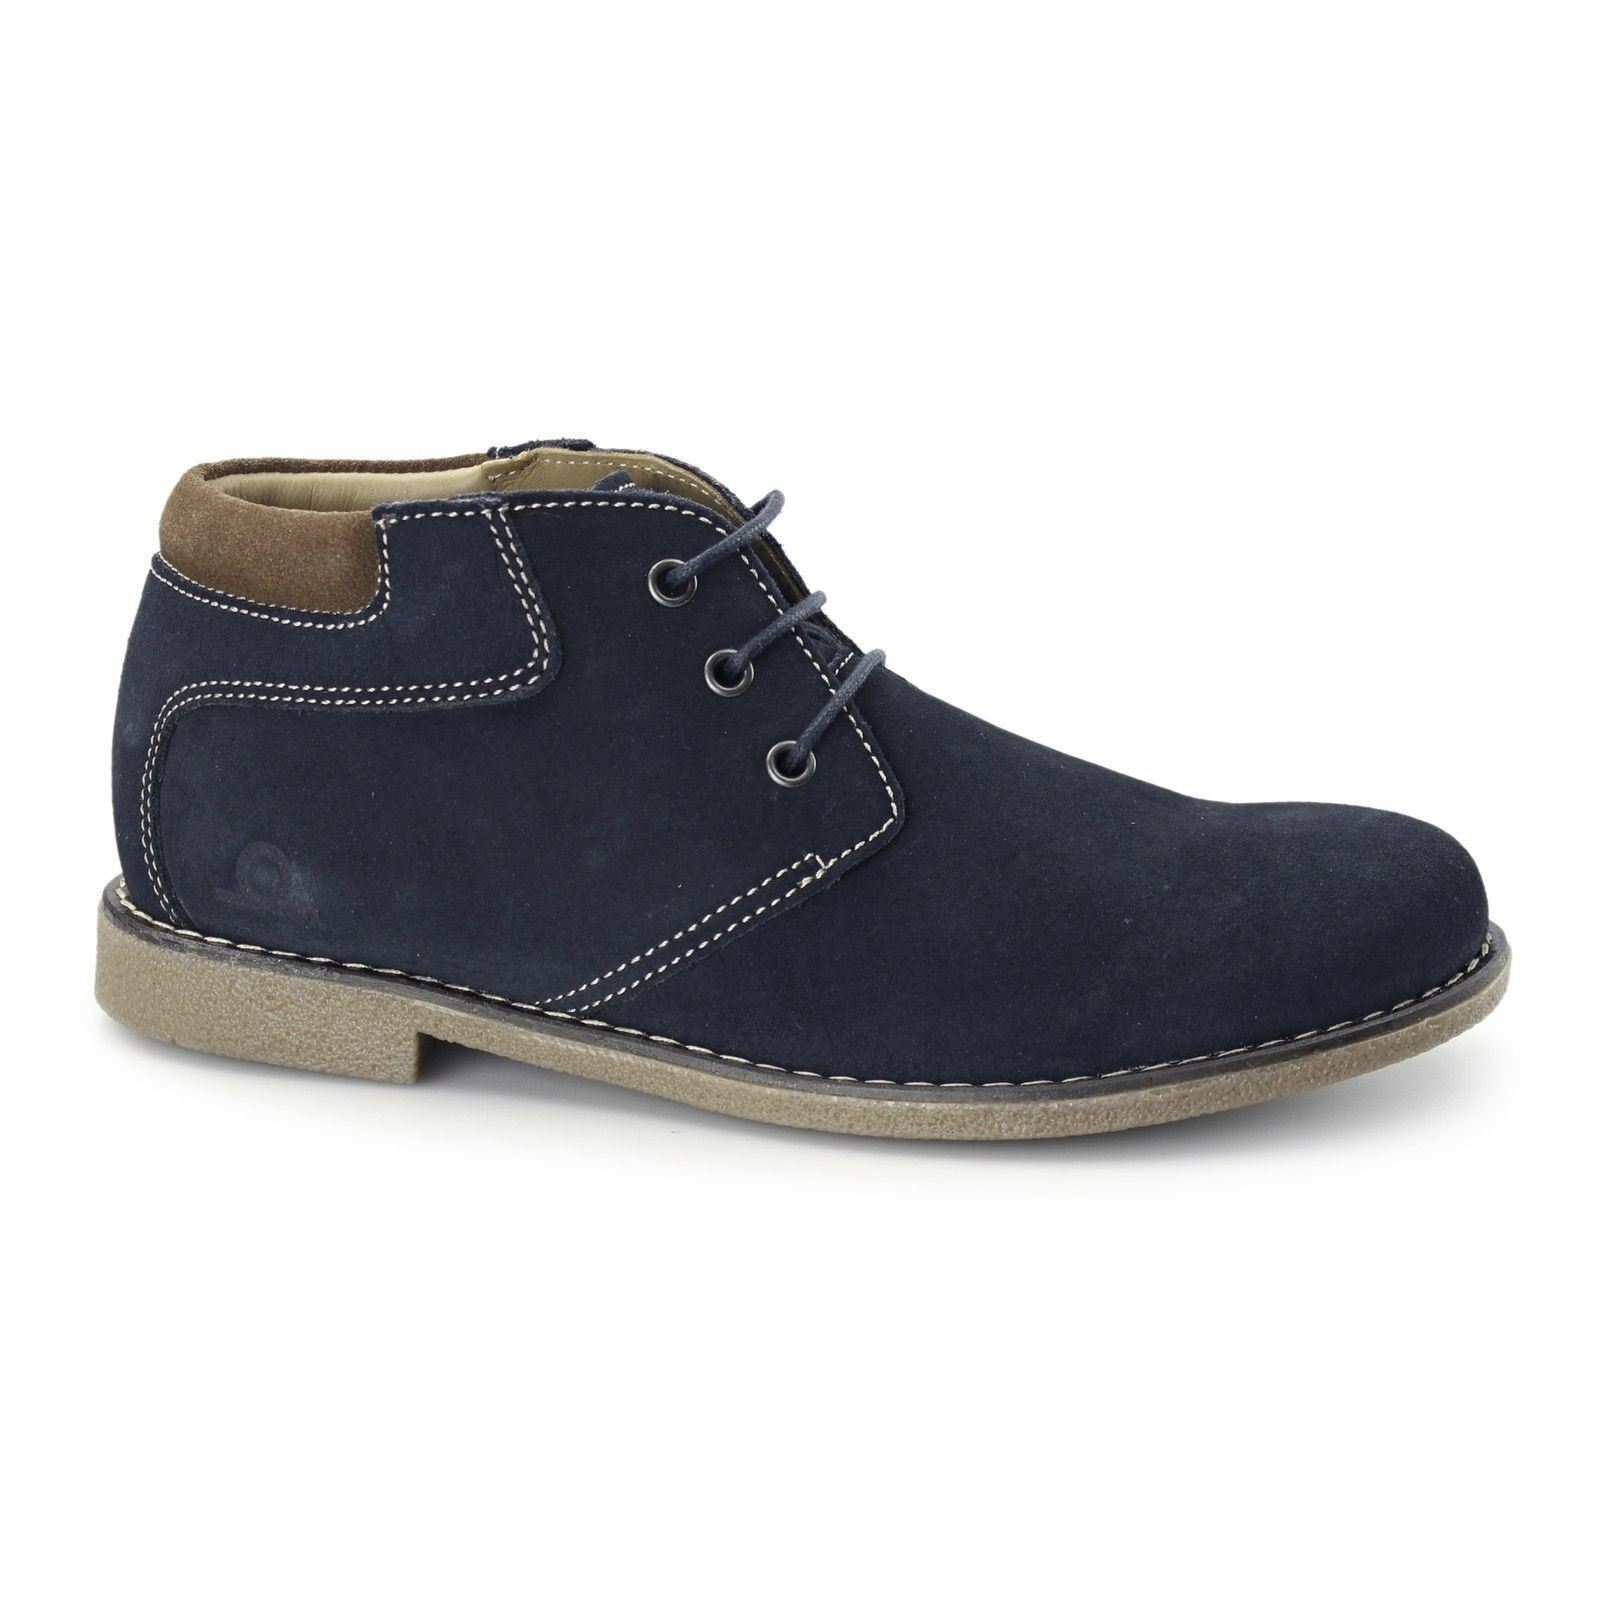 Chatham TOR navy Taglia suede desert boots in Taglia navy uk7 a uk15 715abd